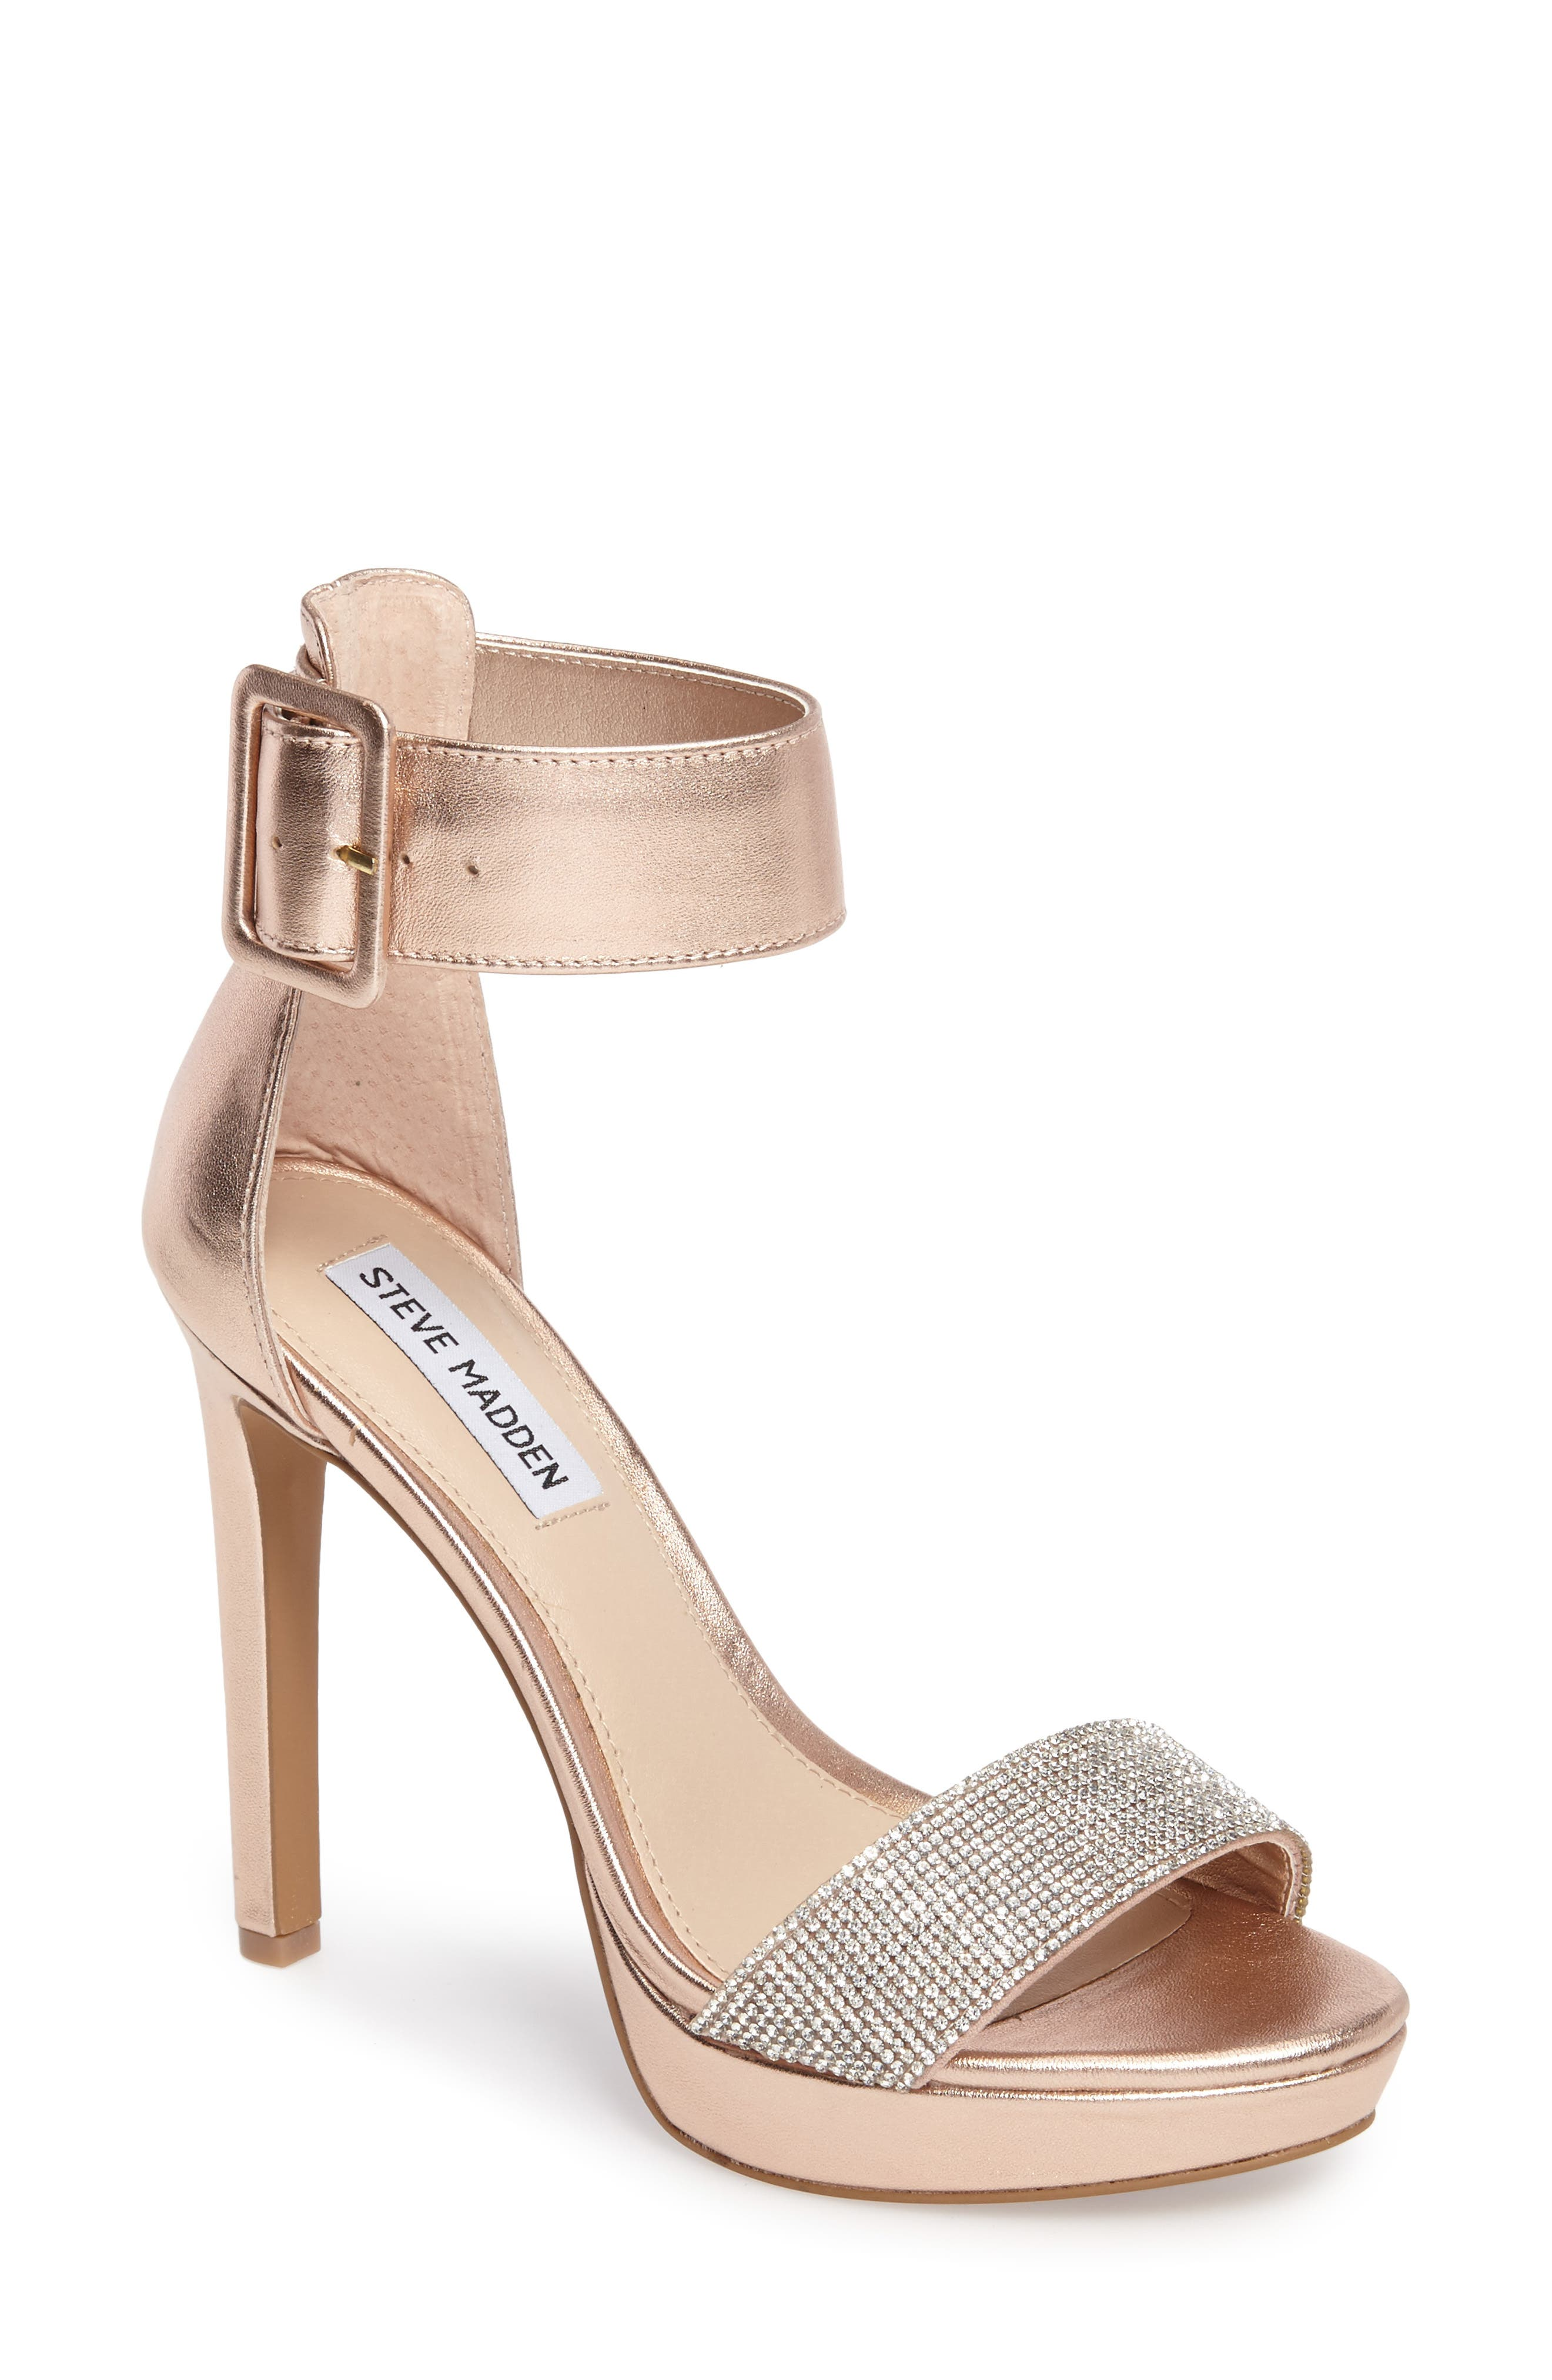 Circuit Sandal,                         Main,                         color, Rose Gold Leather